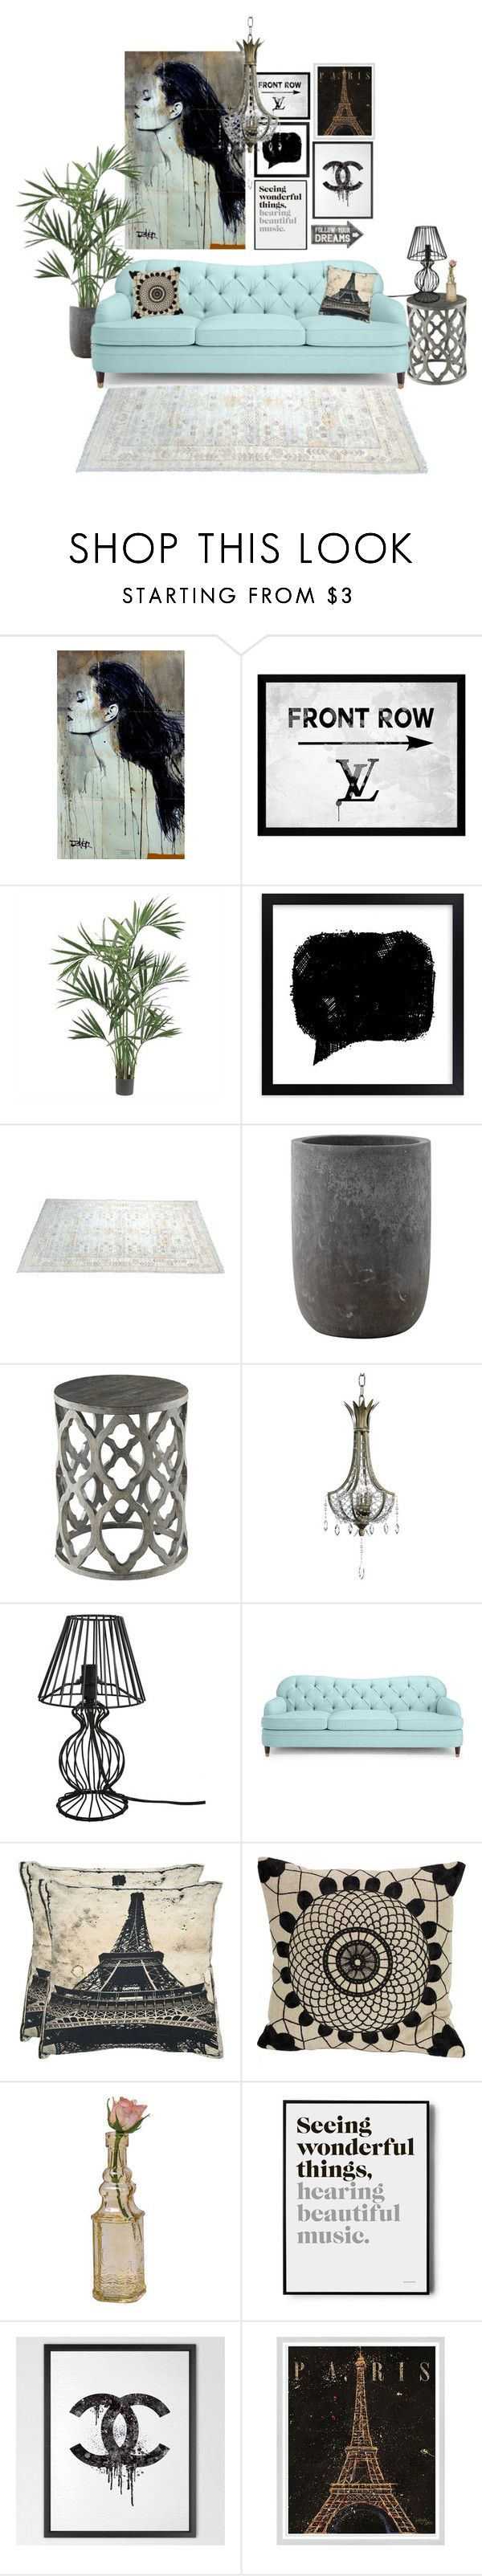 """""""Paris chic"""" by blueeyed-dreamer ❤ liked on Polyvore featuring interior, interiors, interior design, home, home decor, interior decorating, Picture Perfect, Nearly Natural, Bloomingville and Kate Spade"""